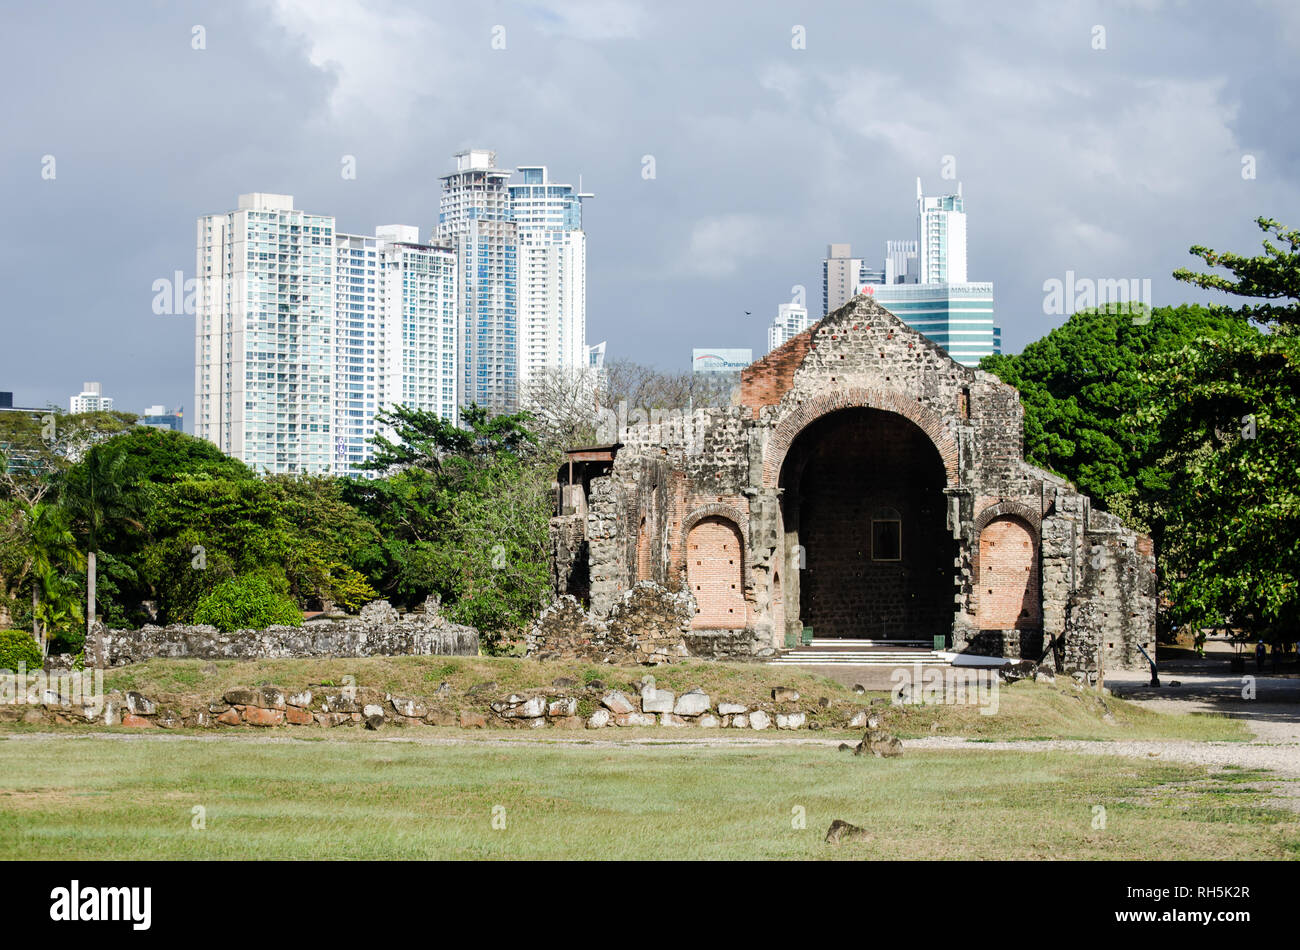 Ruins of Conception Nuns Convent at Panama Viejo. Costa del Este buildings are in the distance - Stock Image